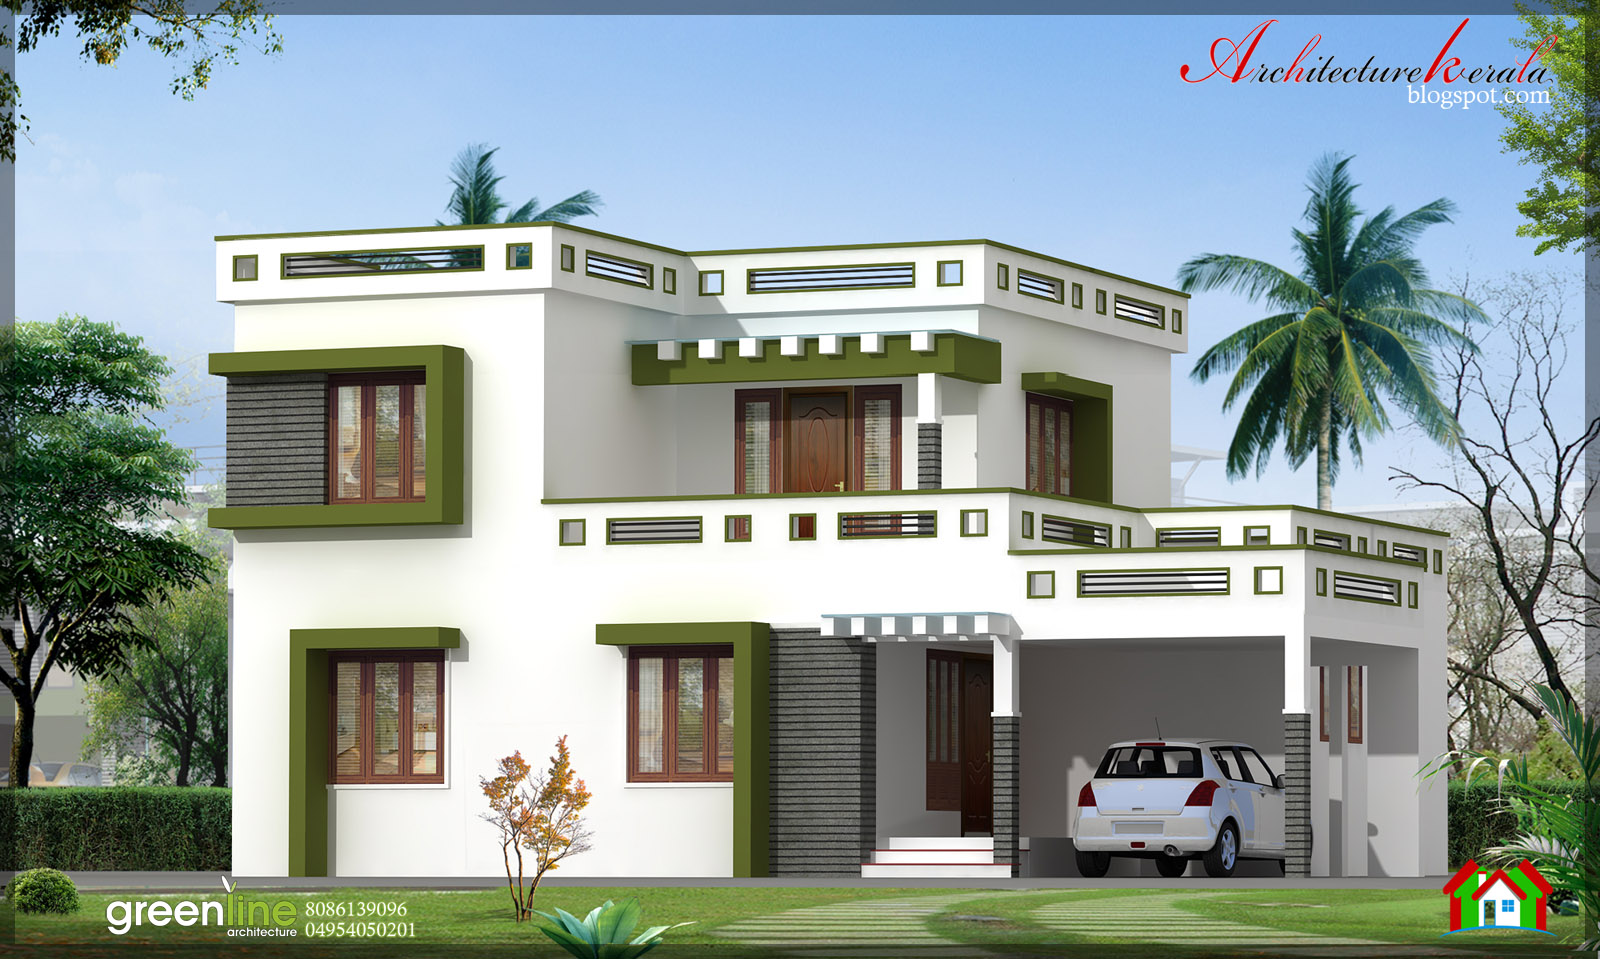 Architecture kerala 3 bhk new modern style kerala home design in 1700 sq ft New house design